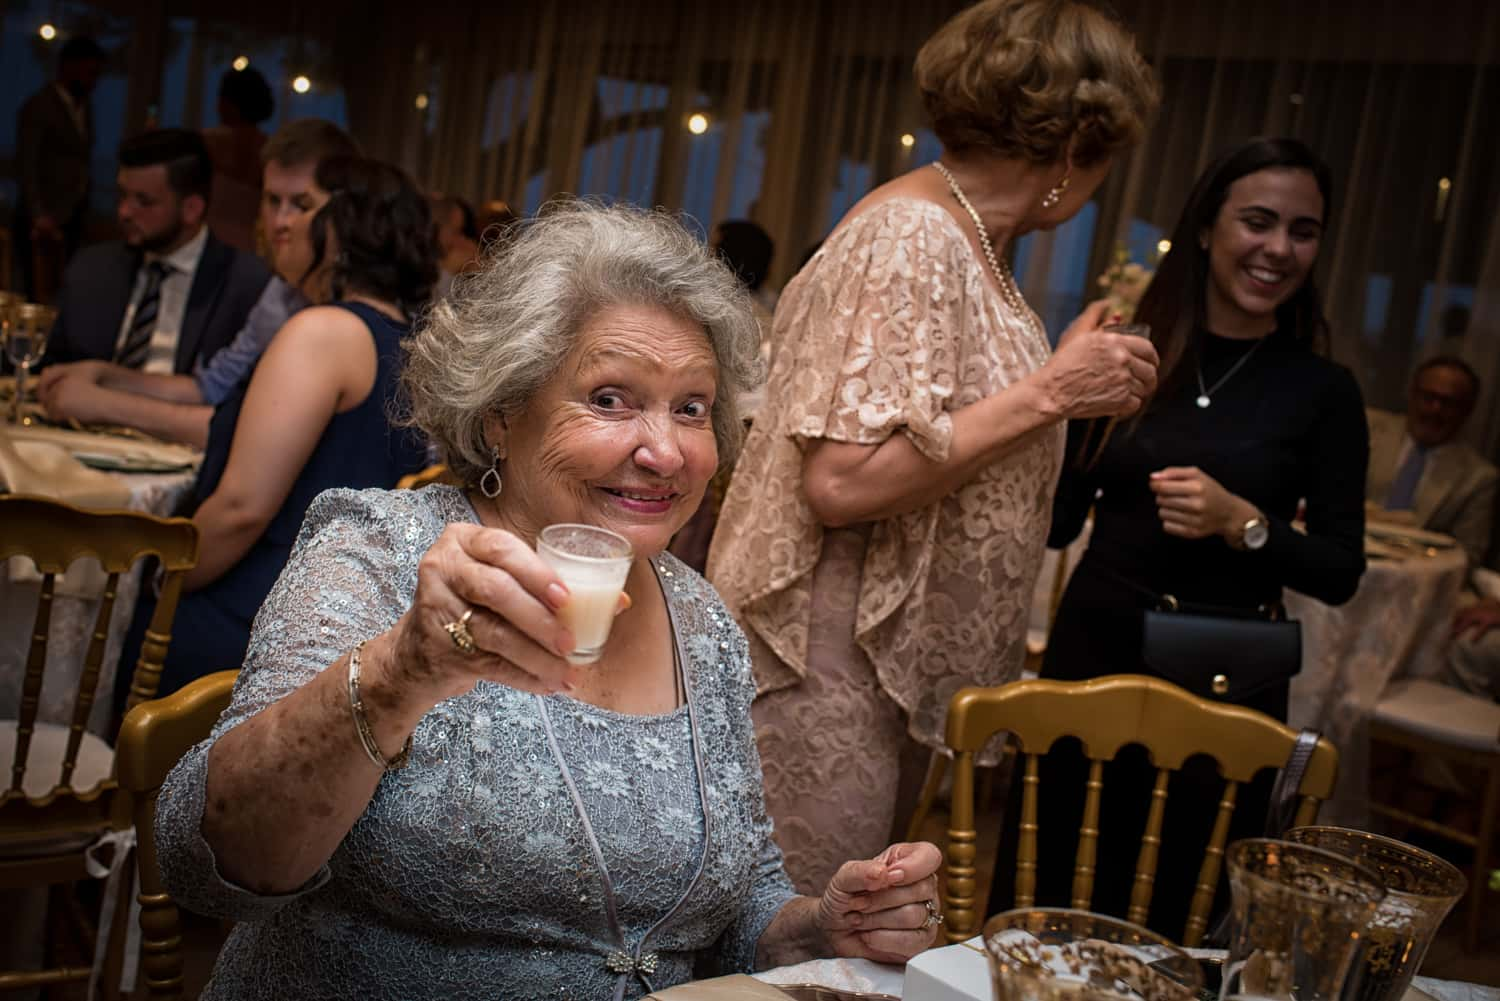 Coquito sipping grandmother at a wedding